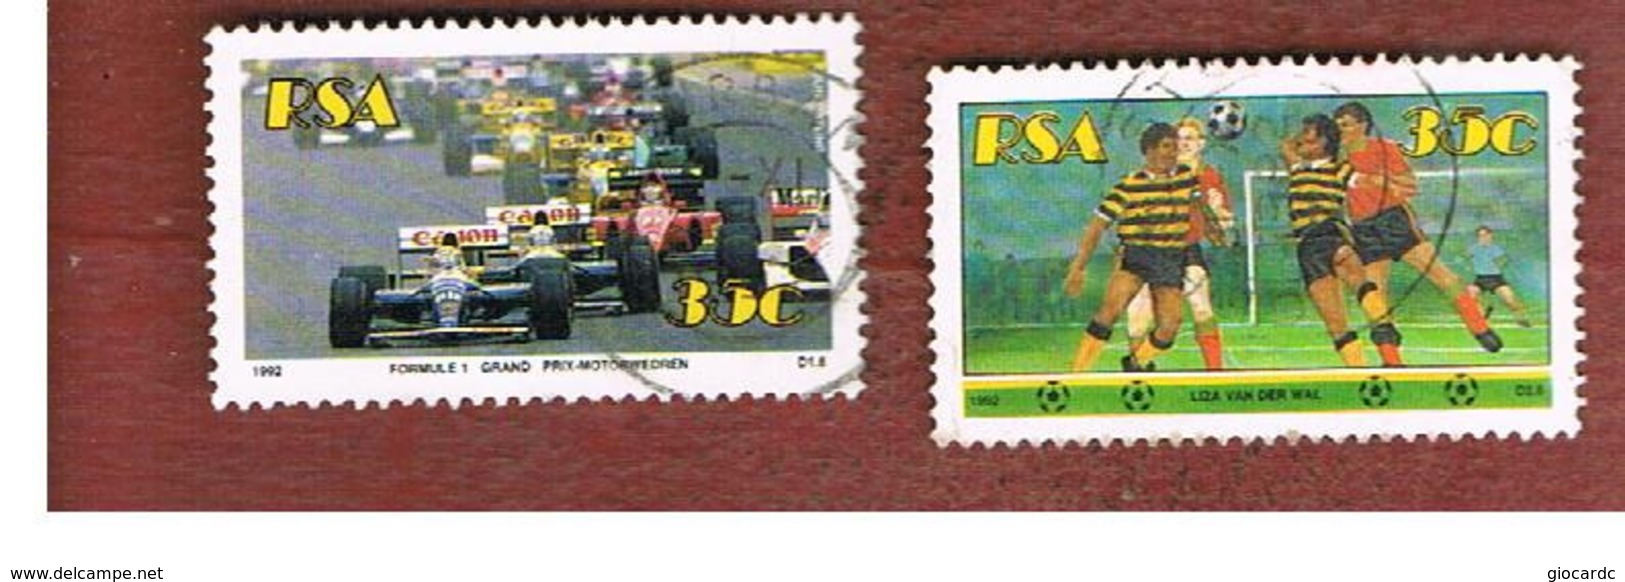 SUD AFRICA (SOUTH AFRICA) - SG 760.761 - 1992   SPORTS  - USED - Usati